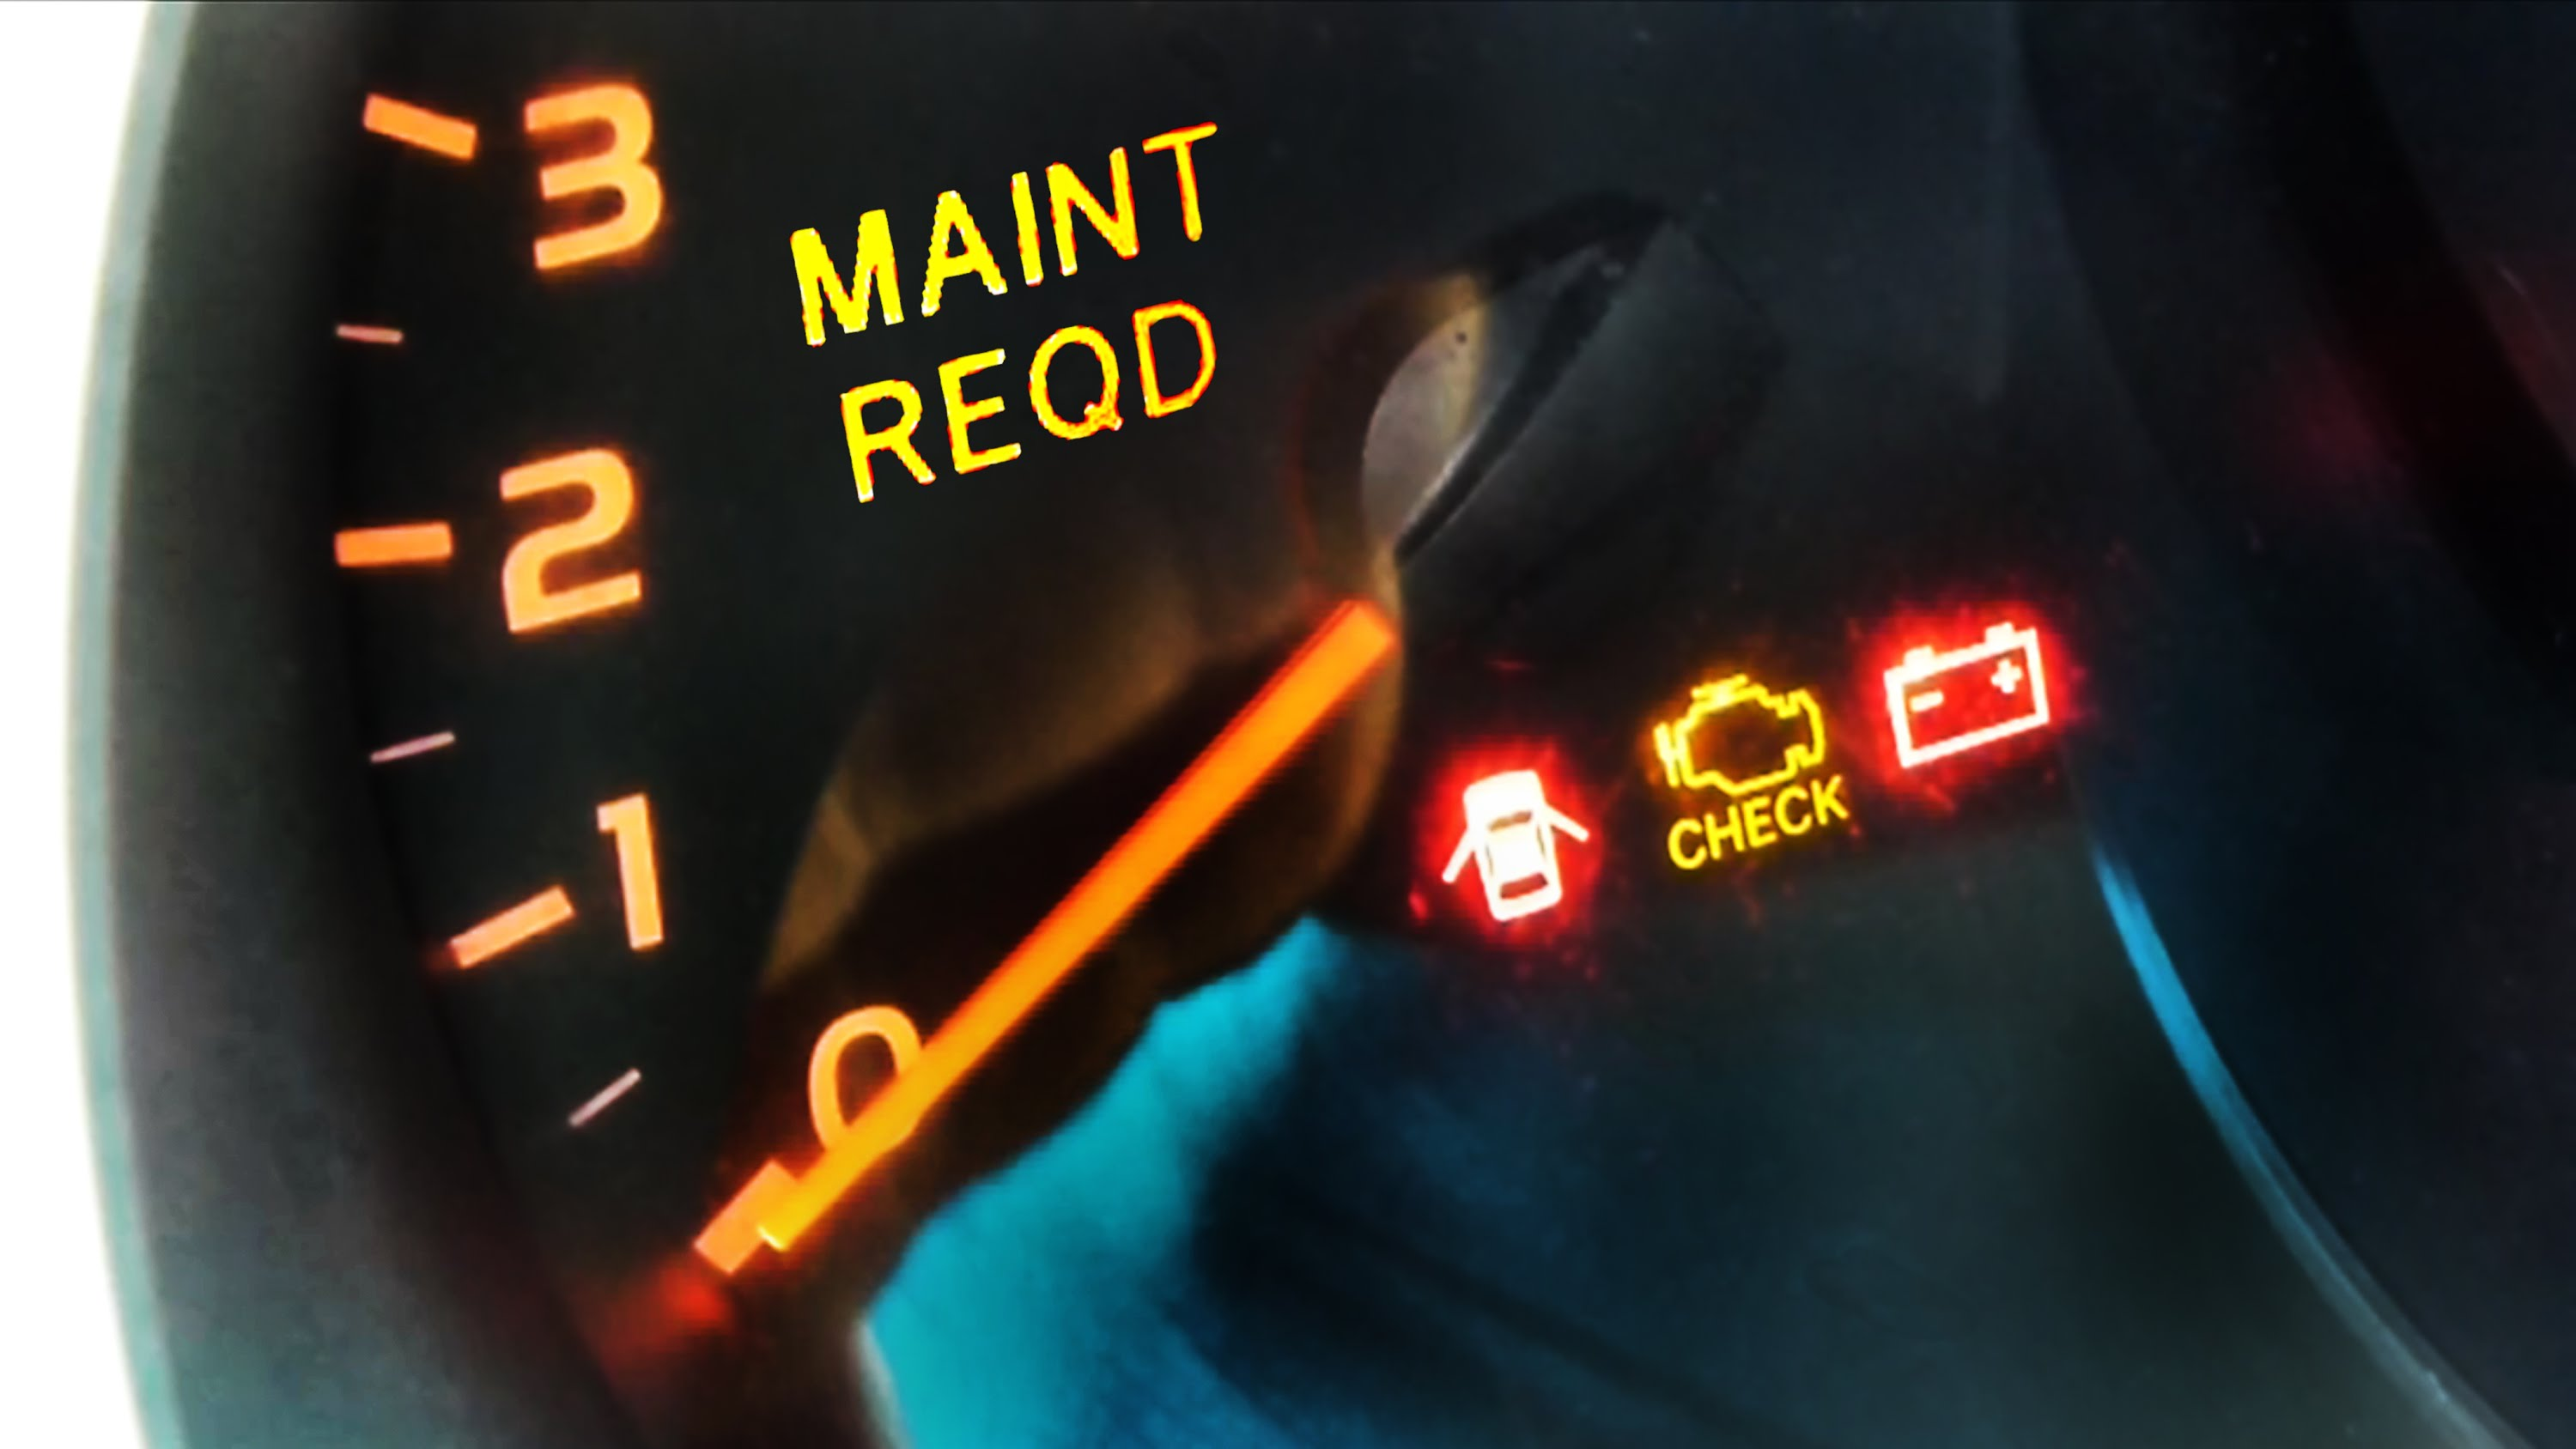 Image Of Lexus Dashboard Showing Maintenance Required Light